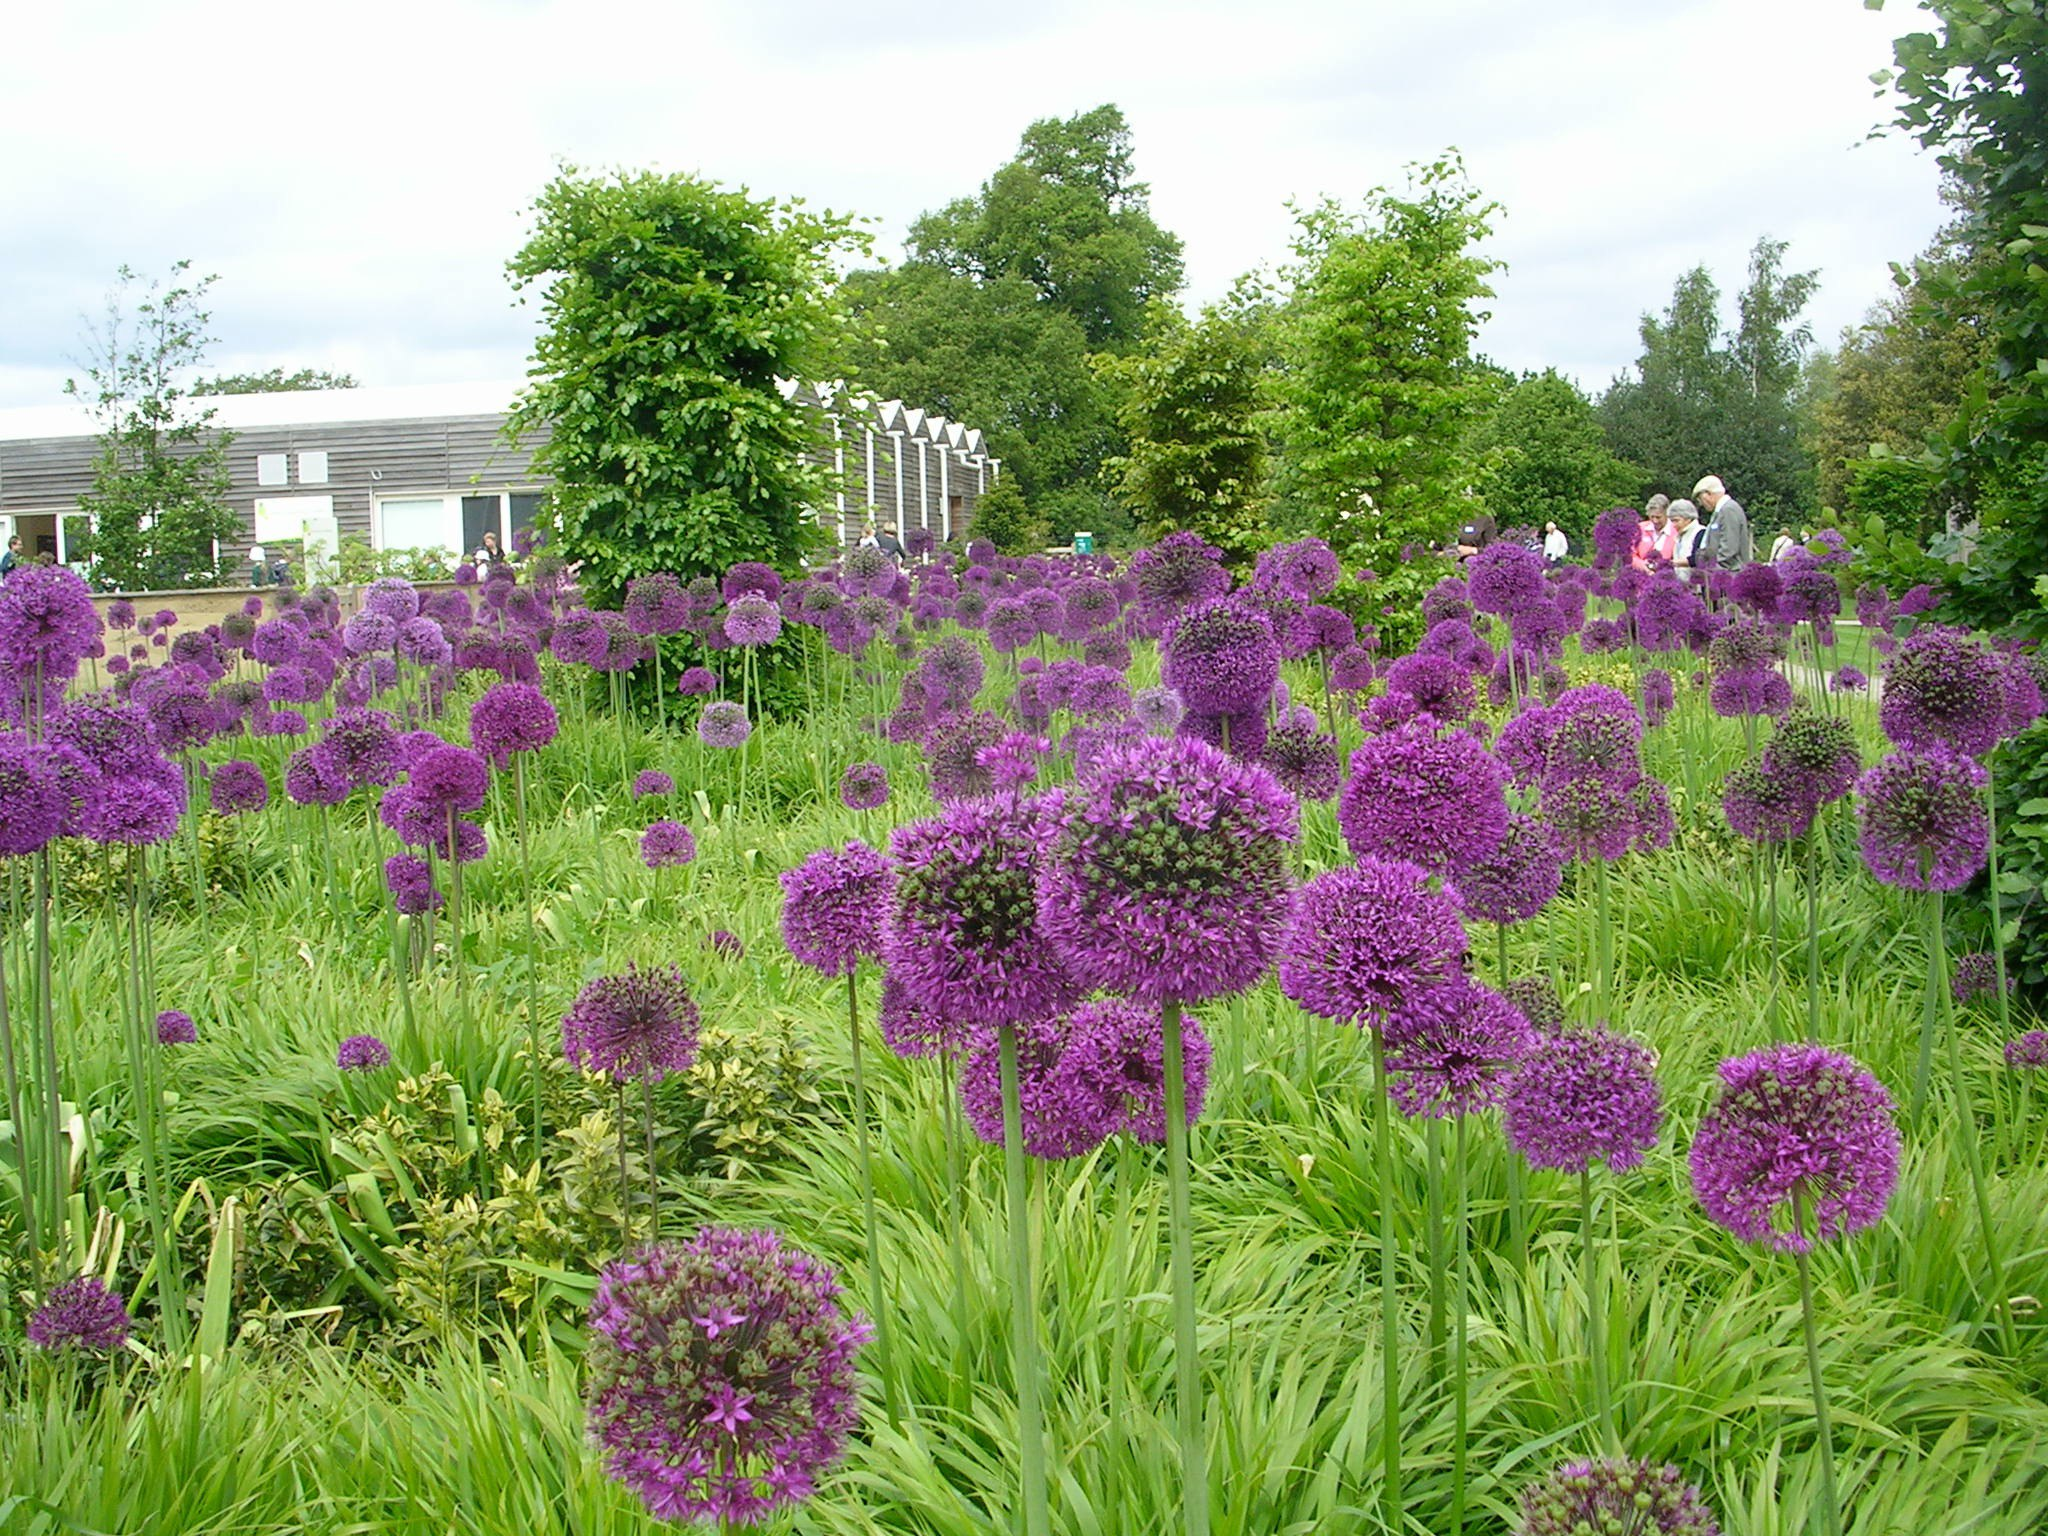 how to grow alliums planting allium bulbs growing alliums. Black Bedroom Furniture Sets. Home Design Ideas